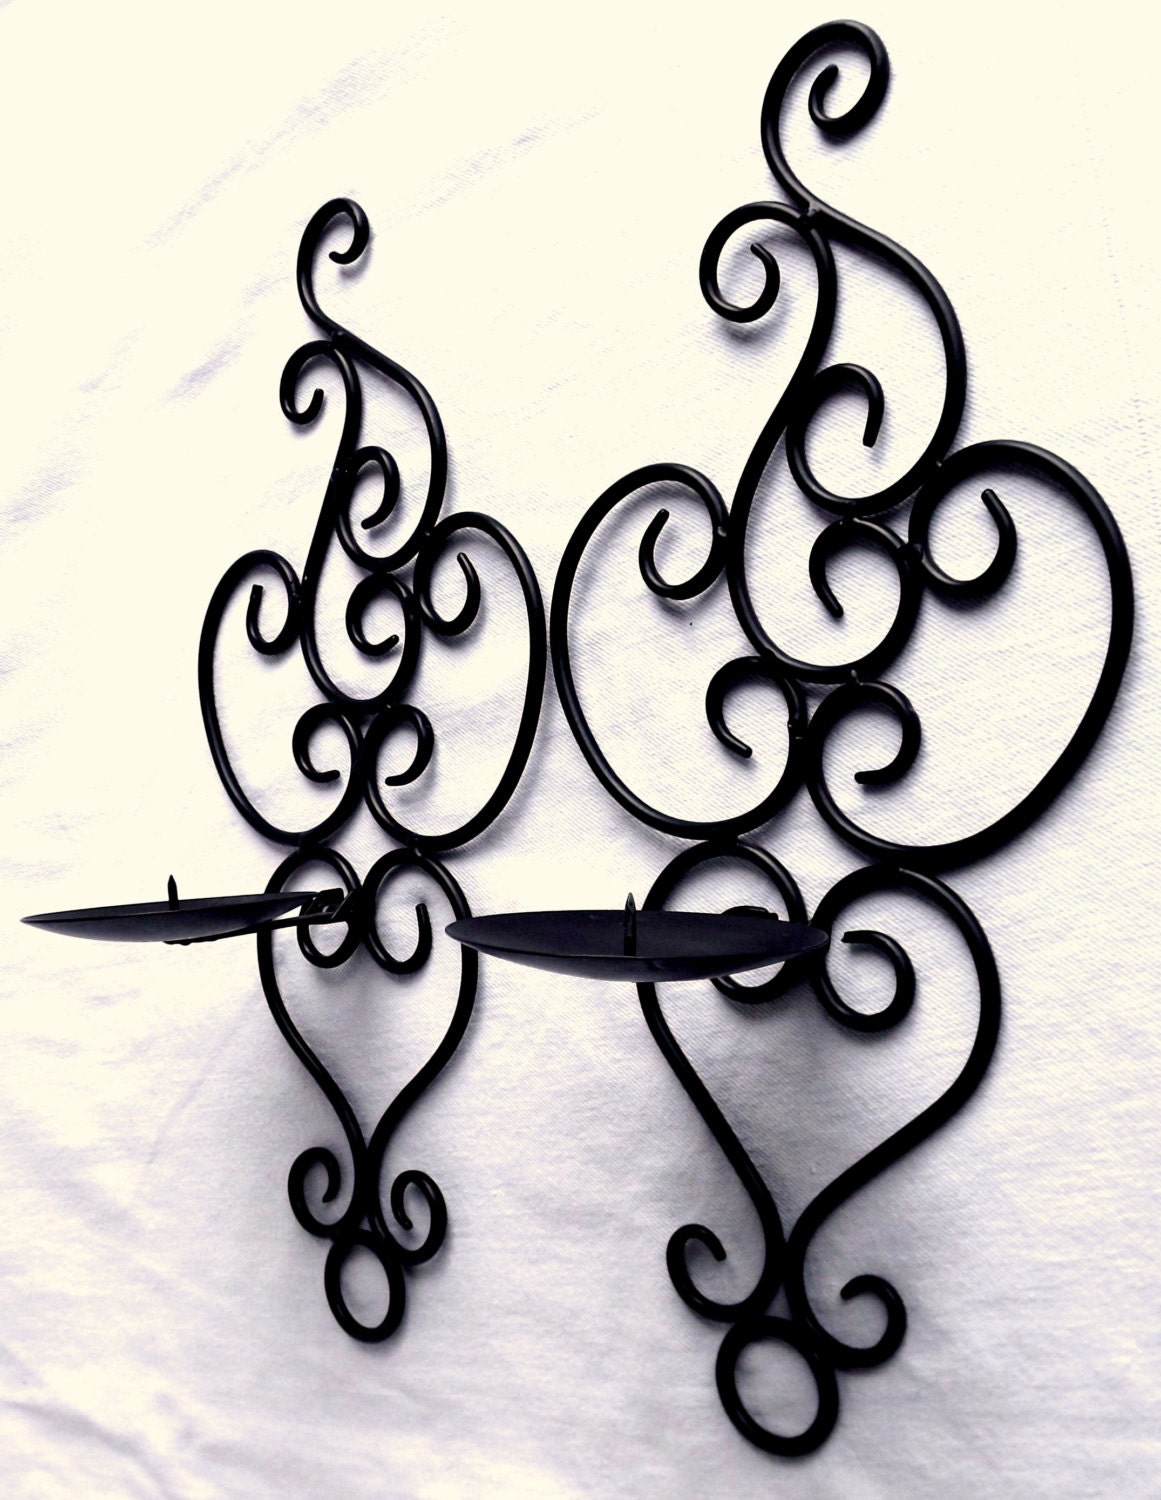 Wrought Iron Wall Decor Candle Holders : Wrought iron candle wall sconces garden sconce